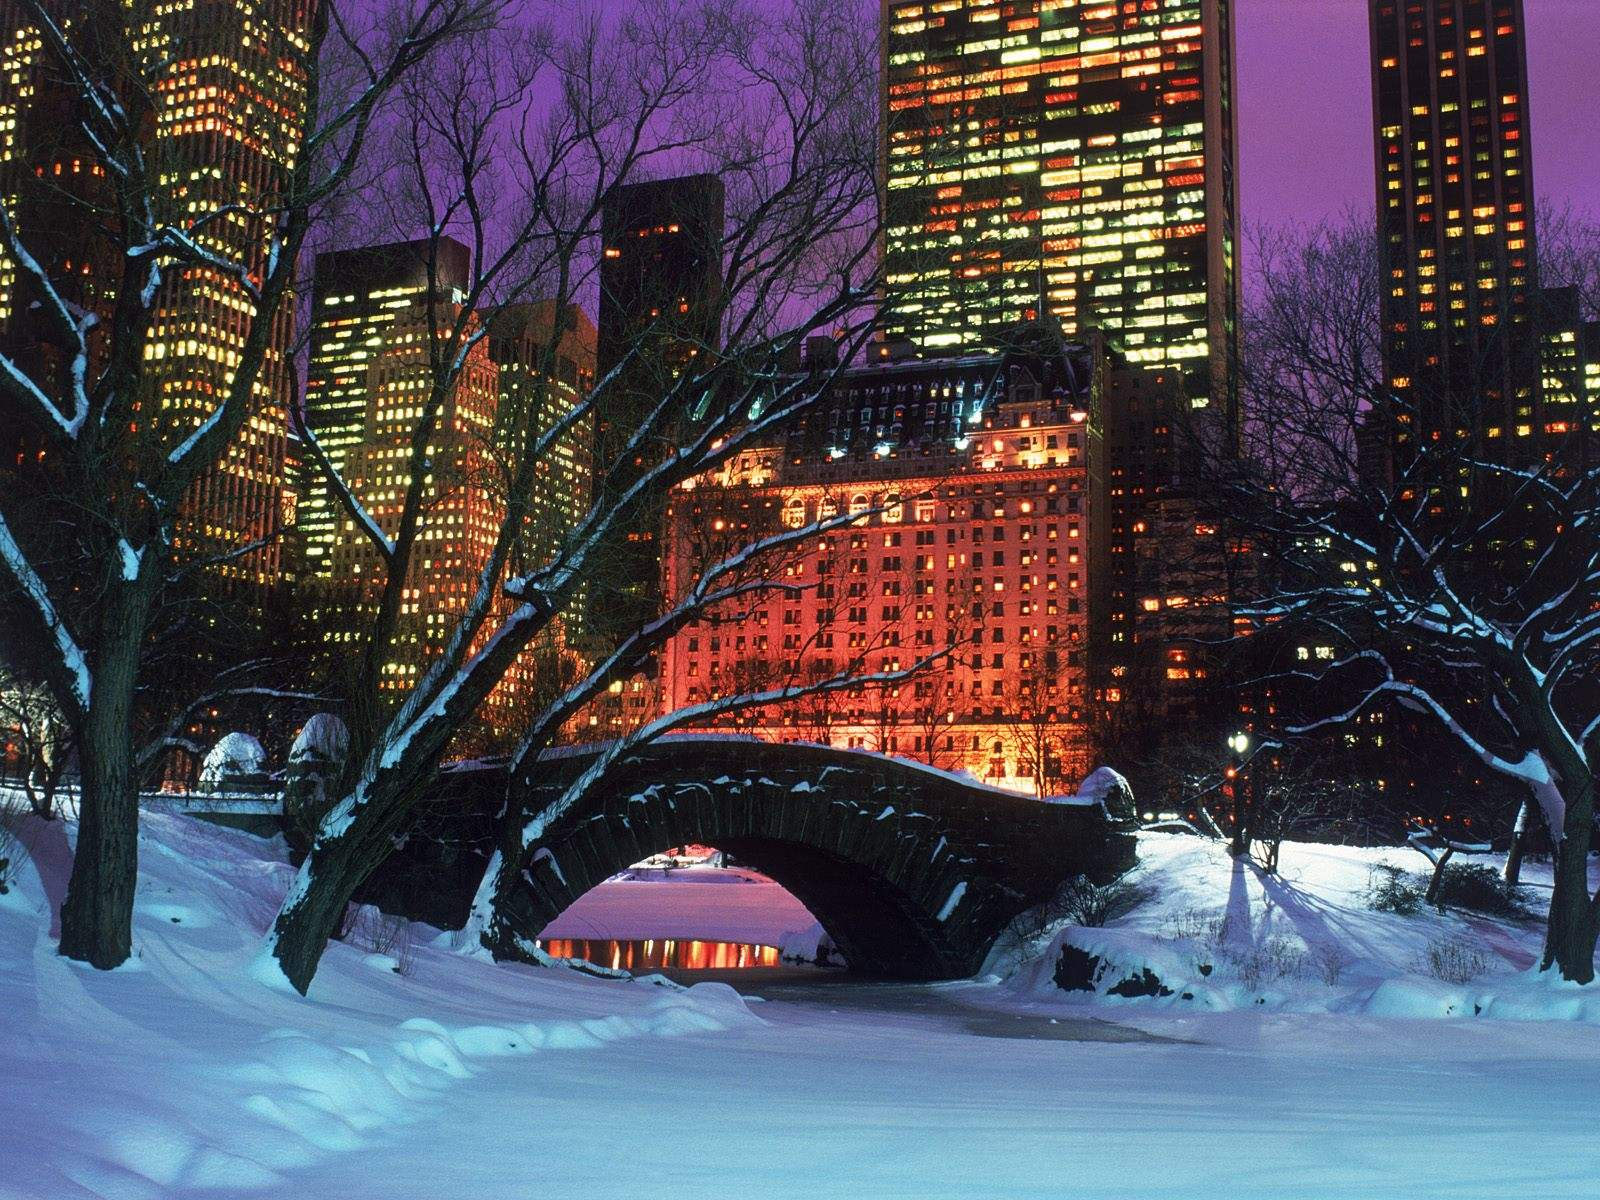 Download Snow Park New York Free Widescreen Christmas Wallpapers